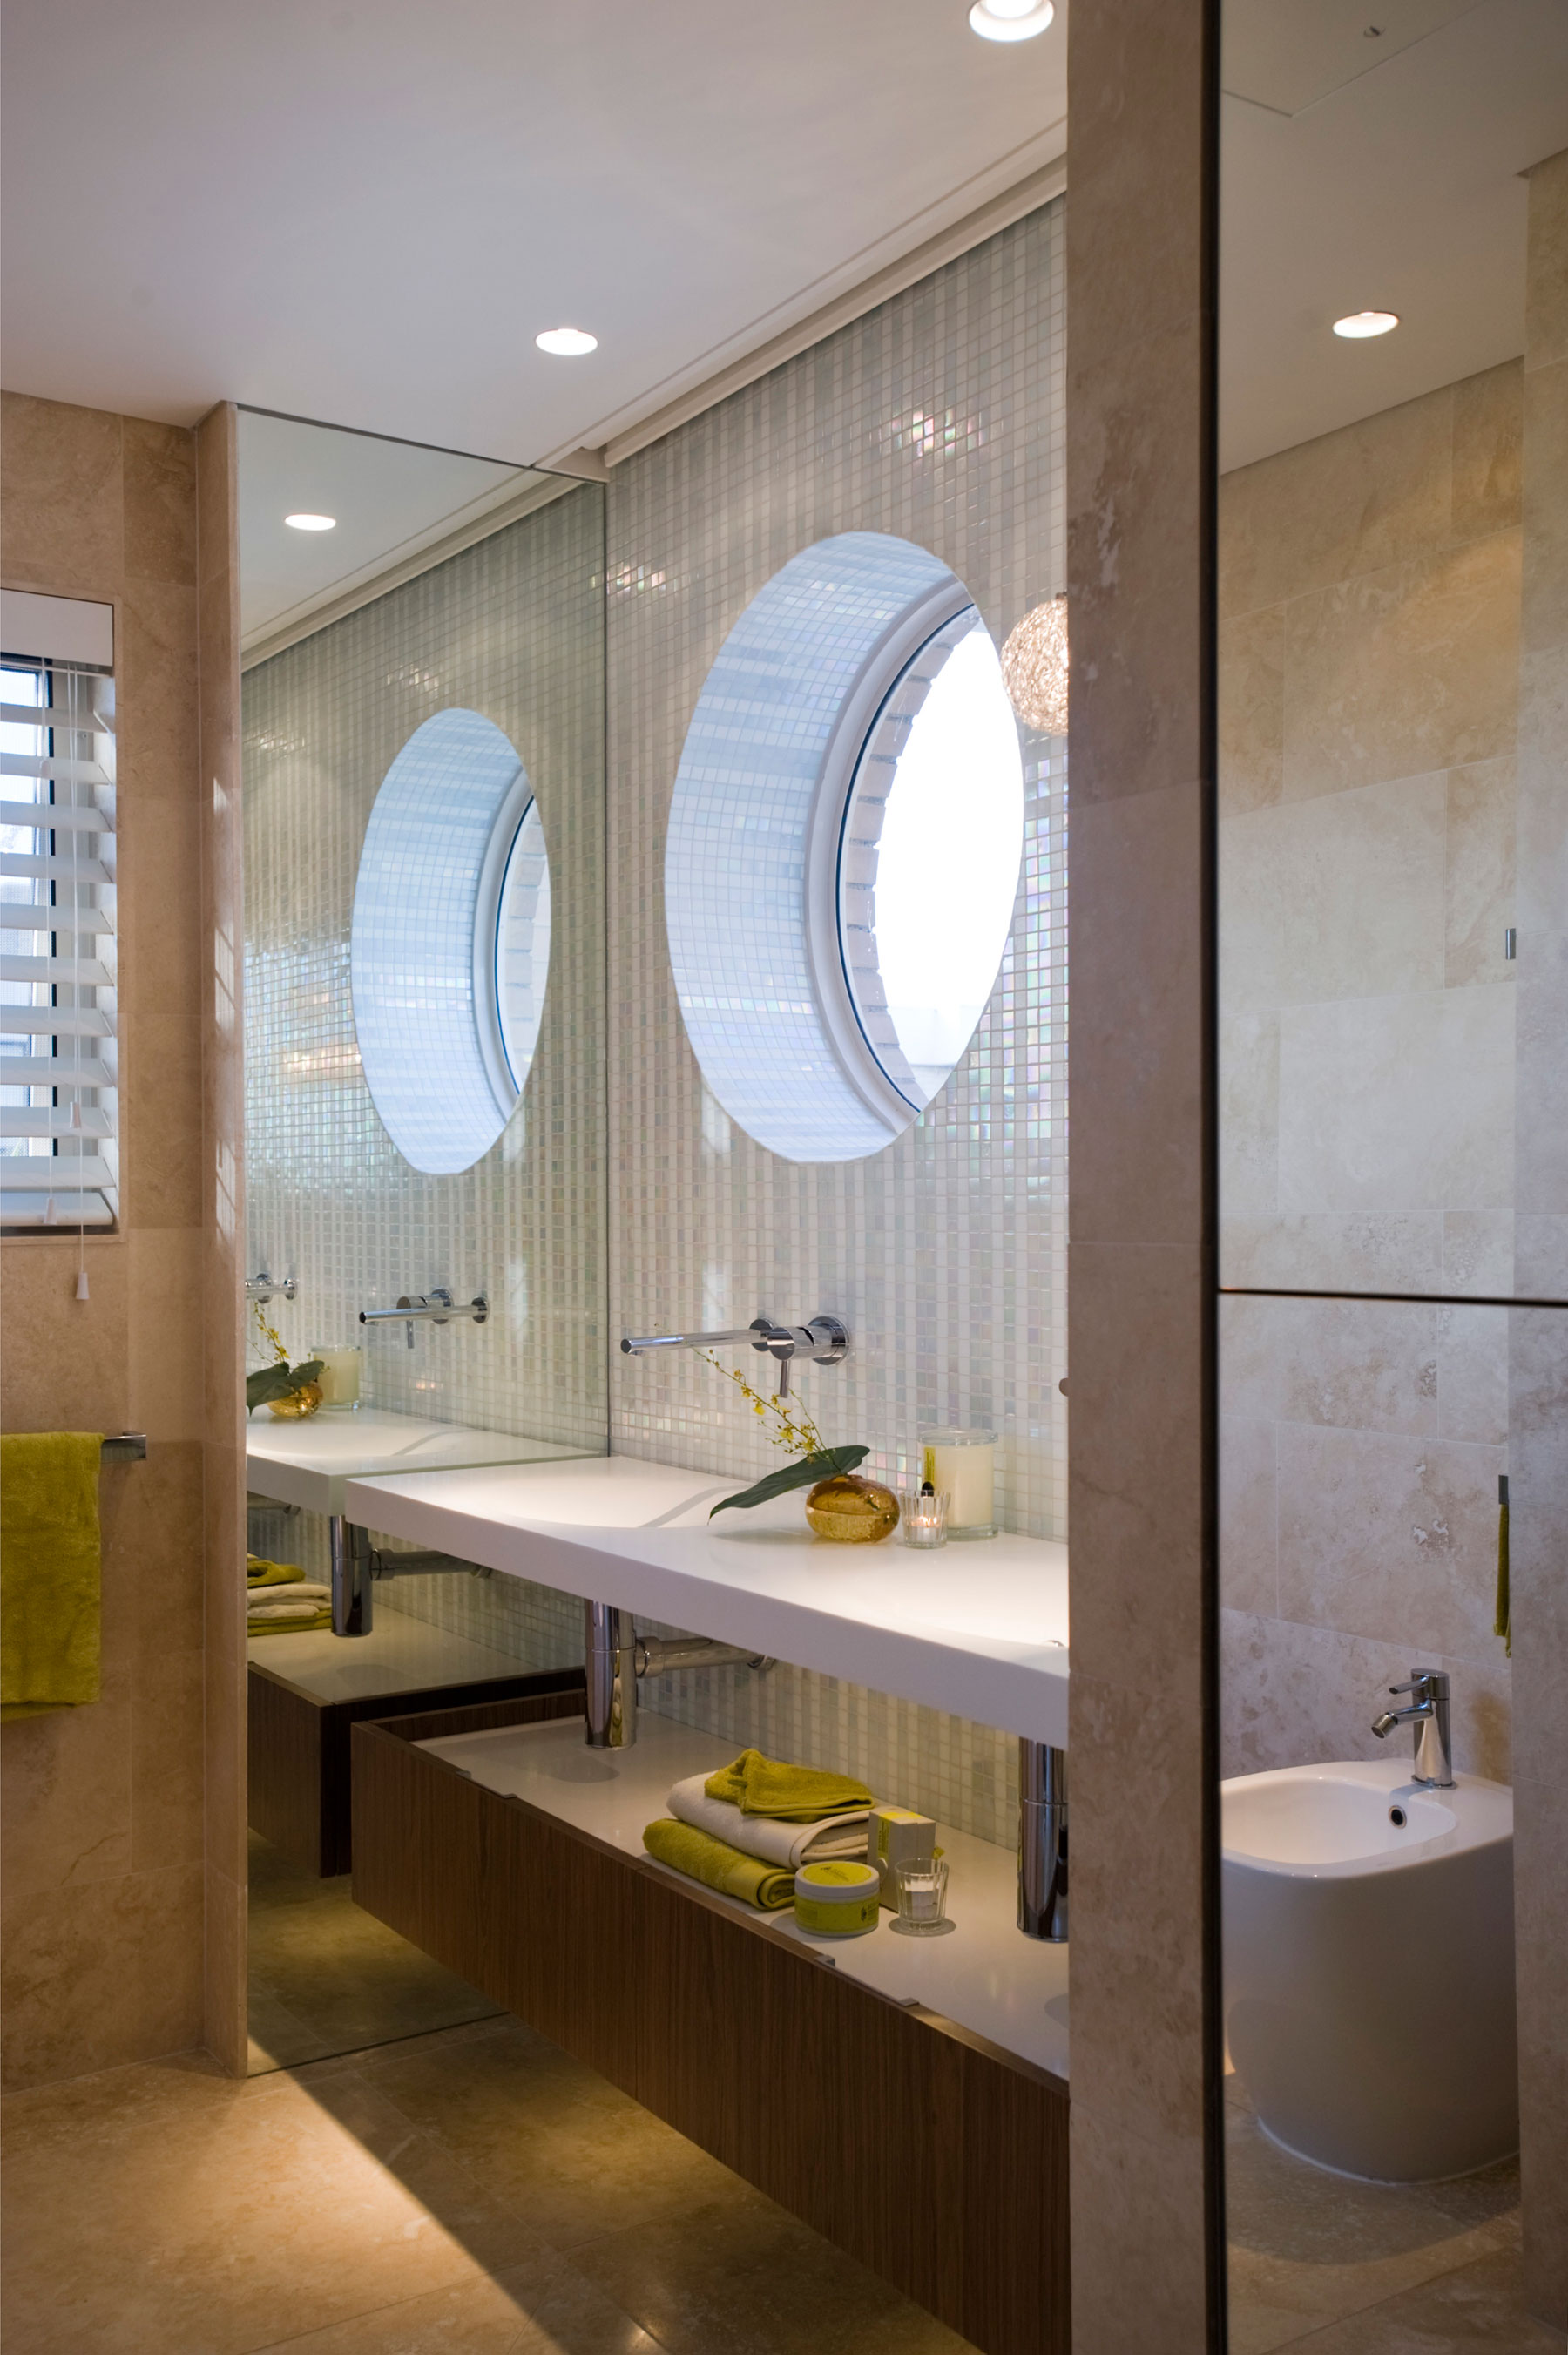 Before after bondi bathroom remodel by minosa design 2